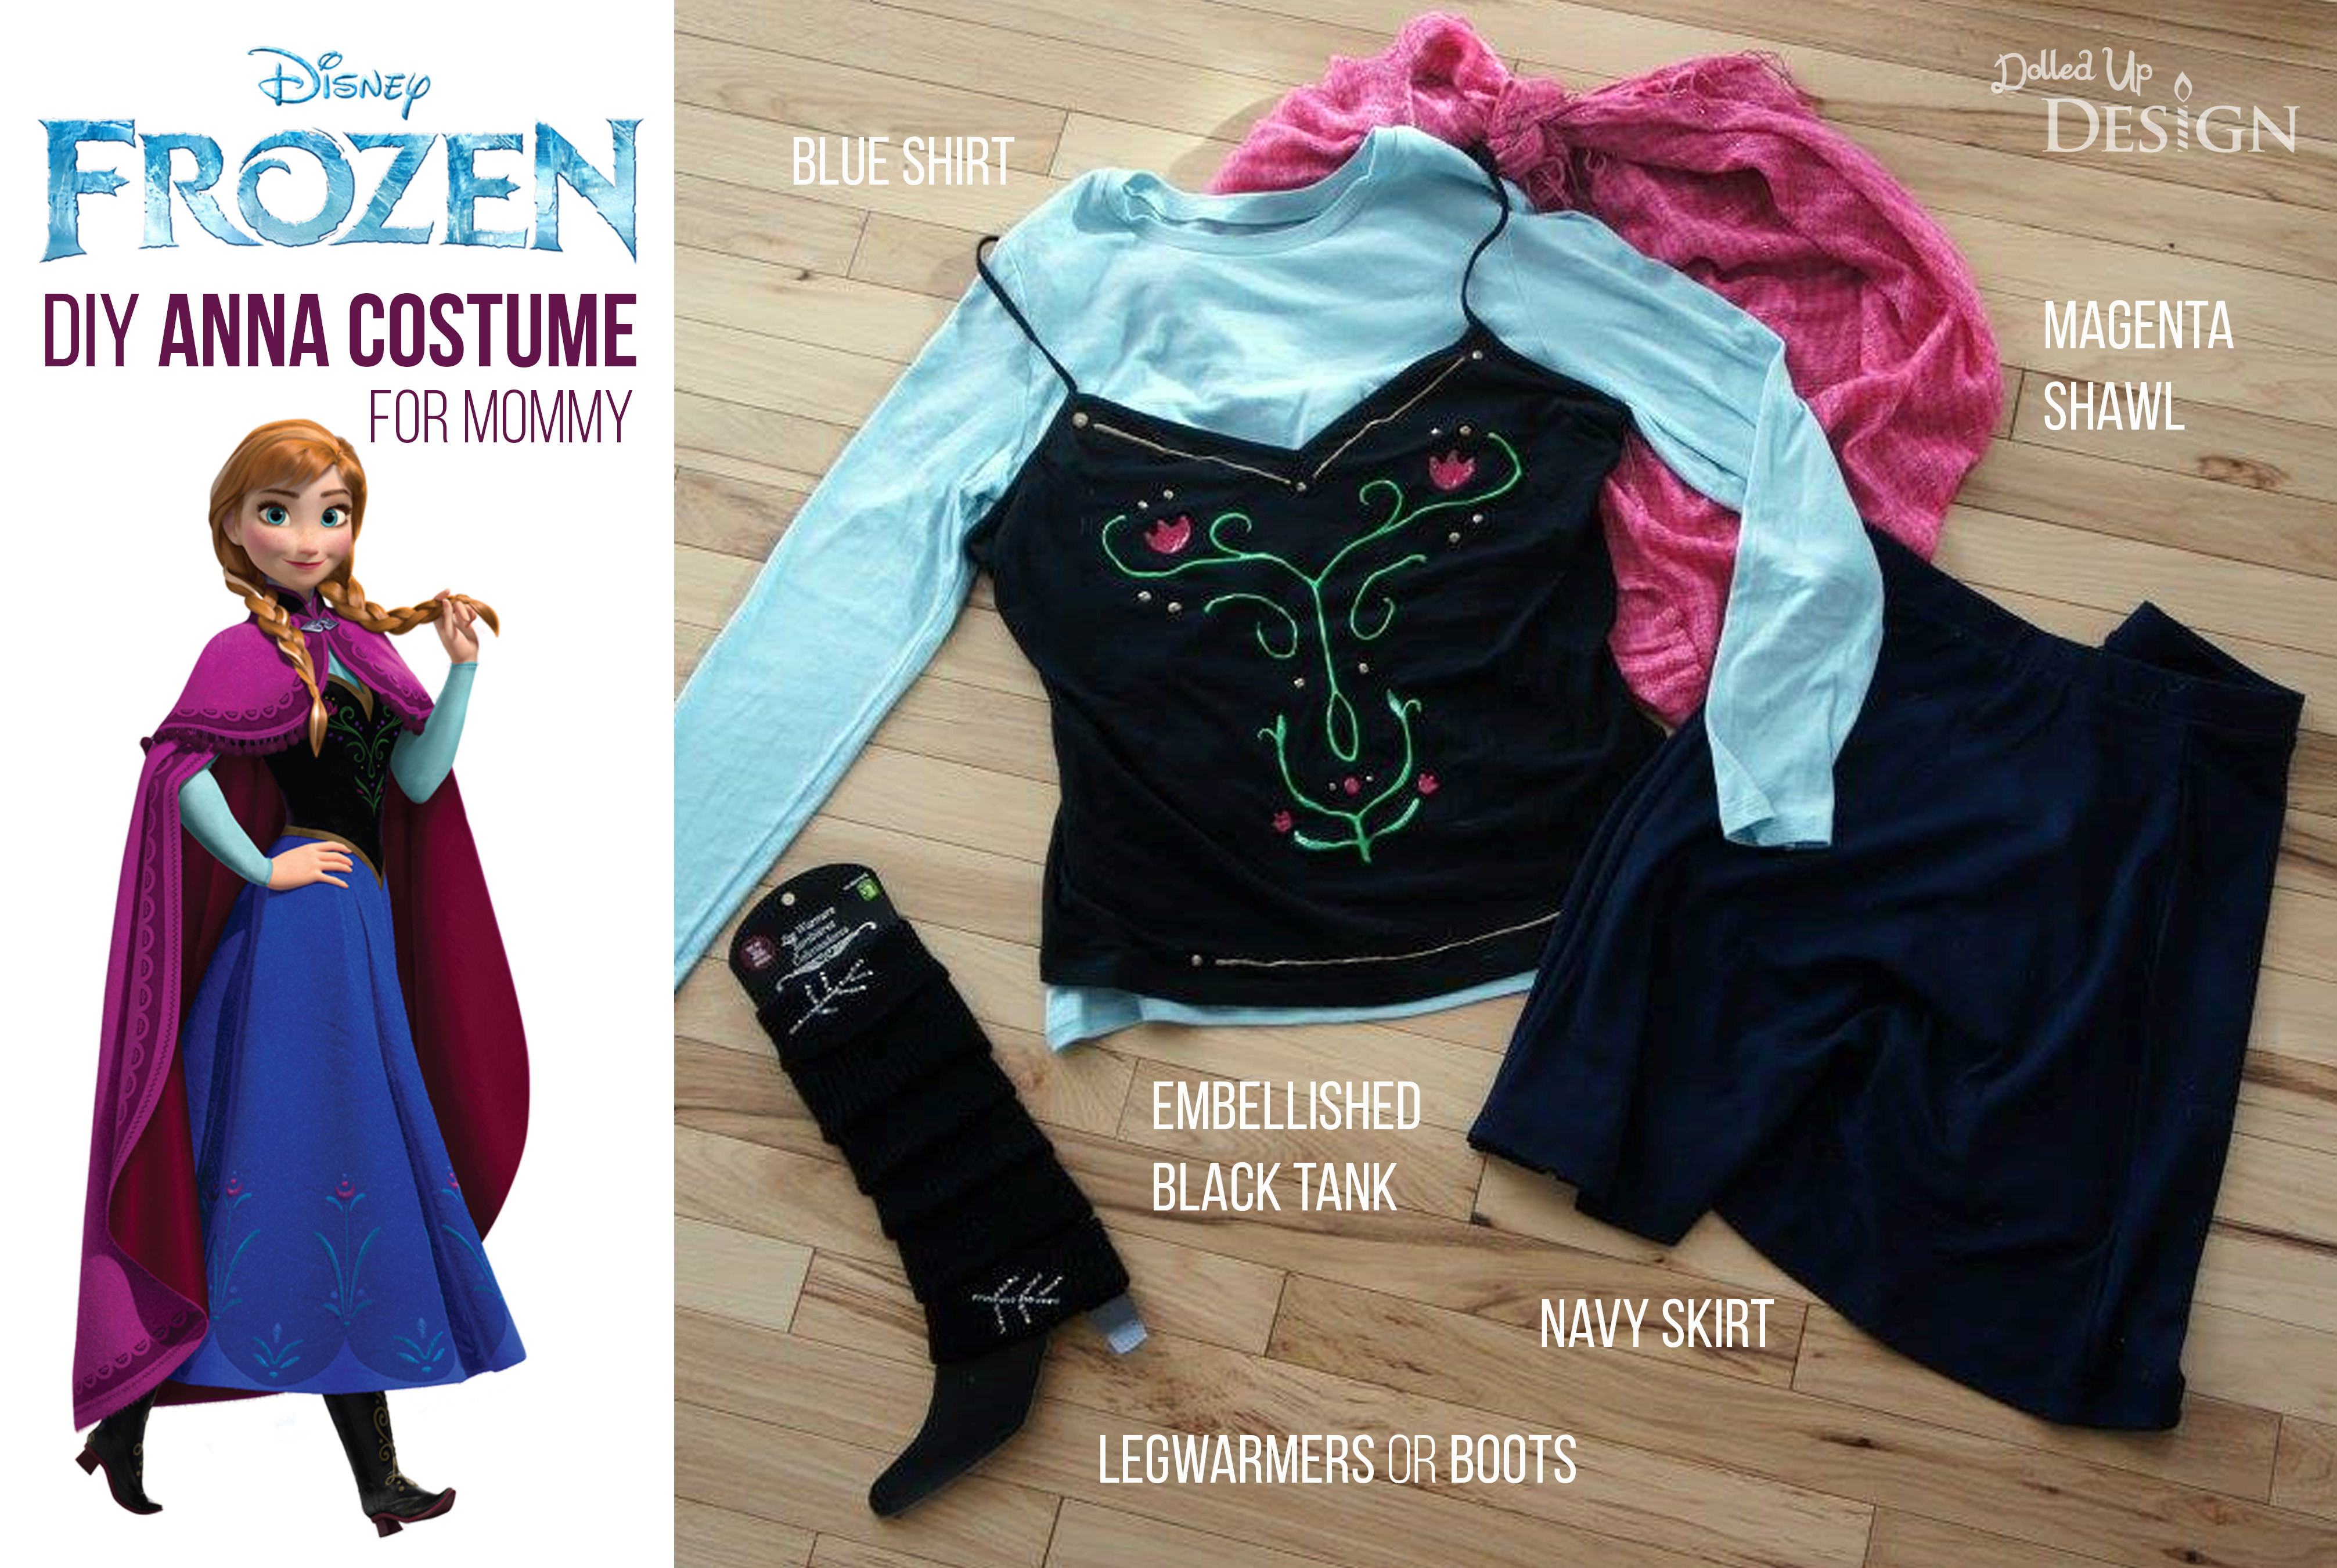 DIY Anna Costumes  A DIY Princess Anna Costume for Mommy